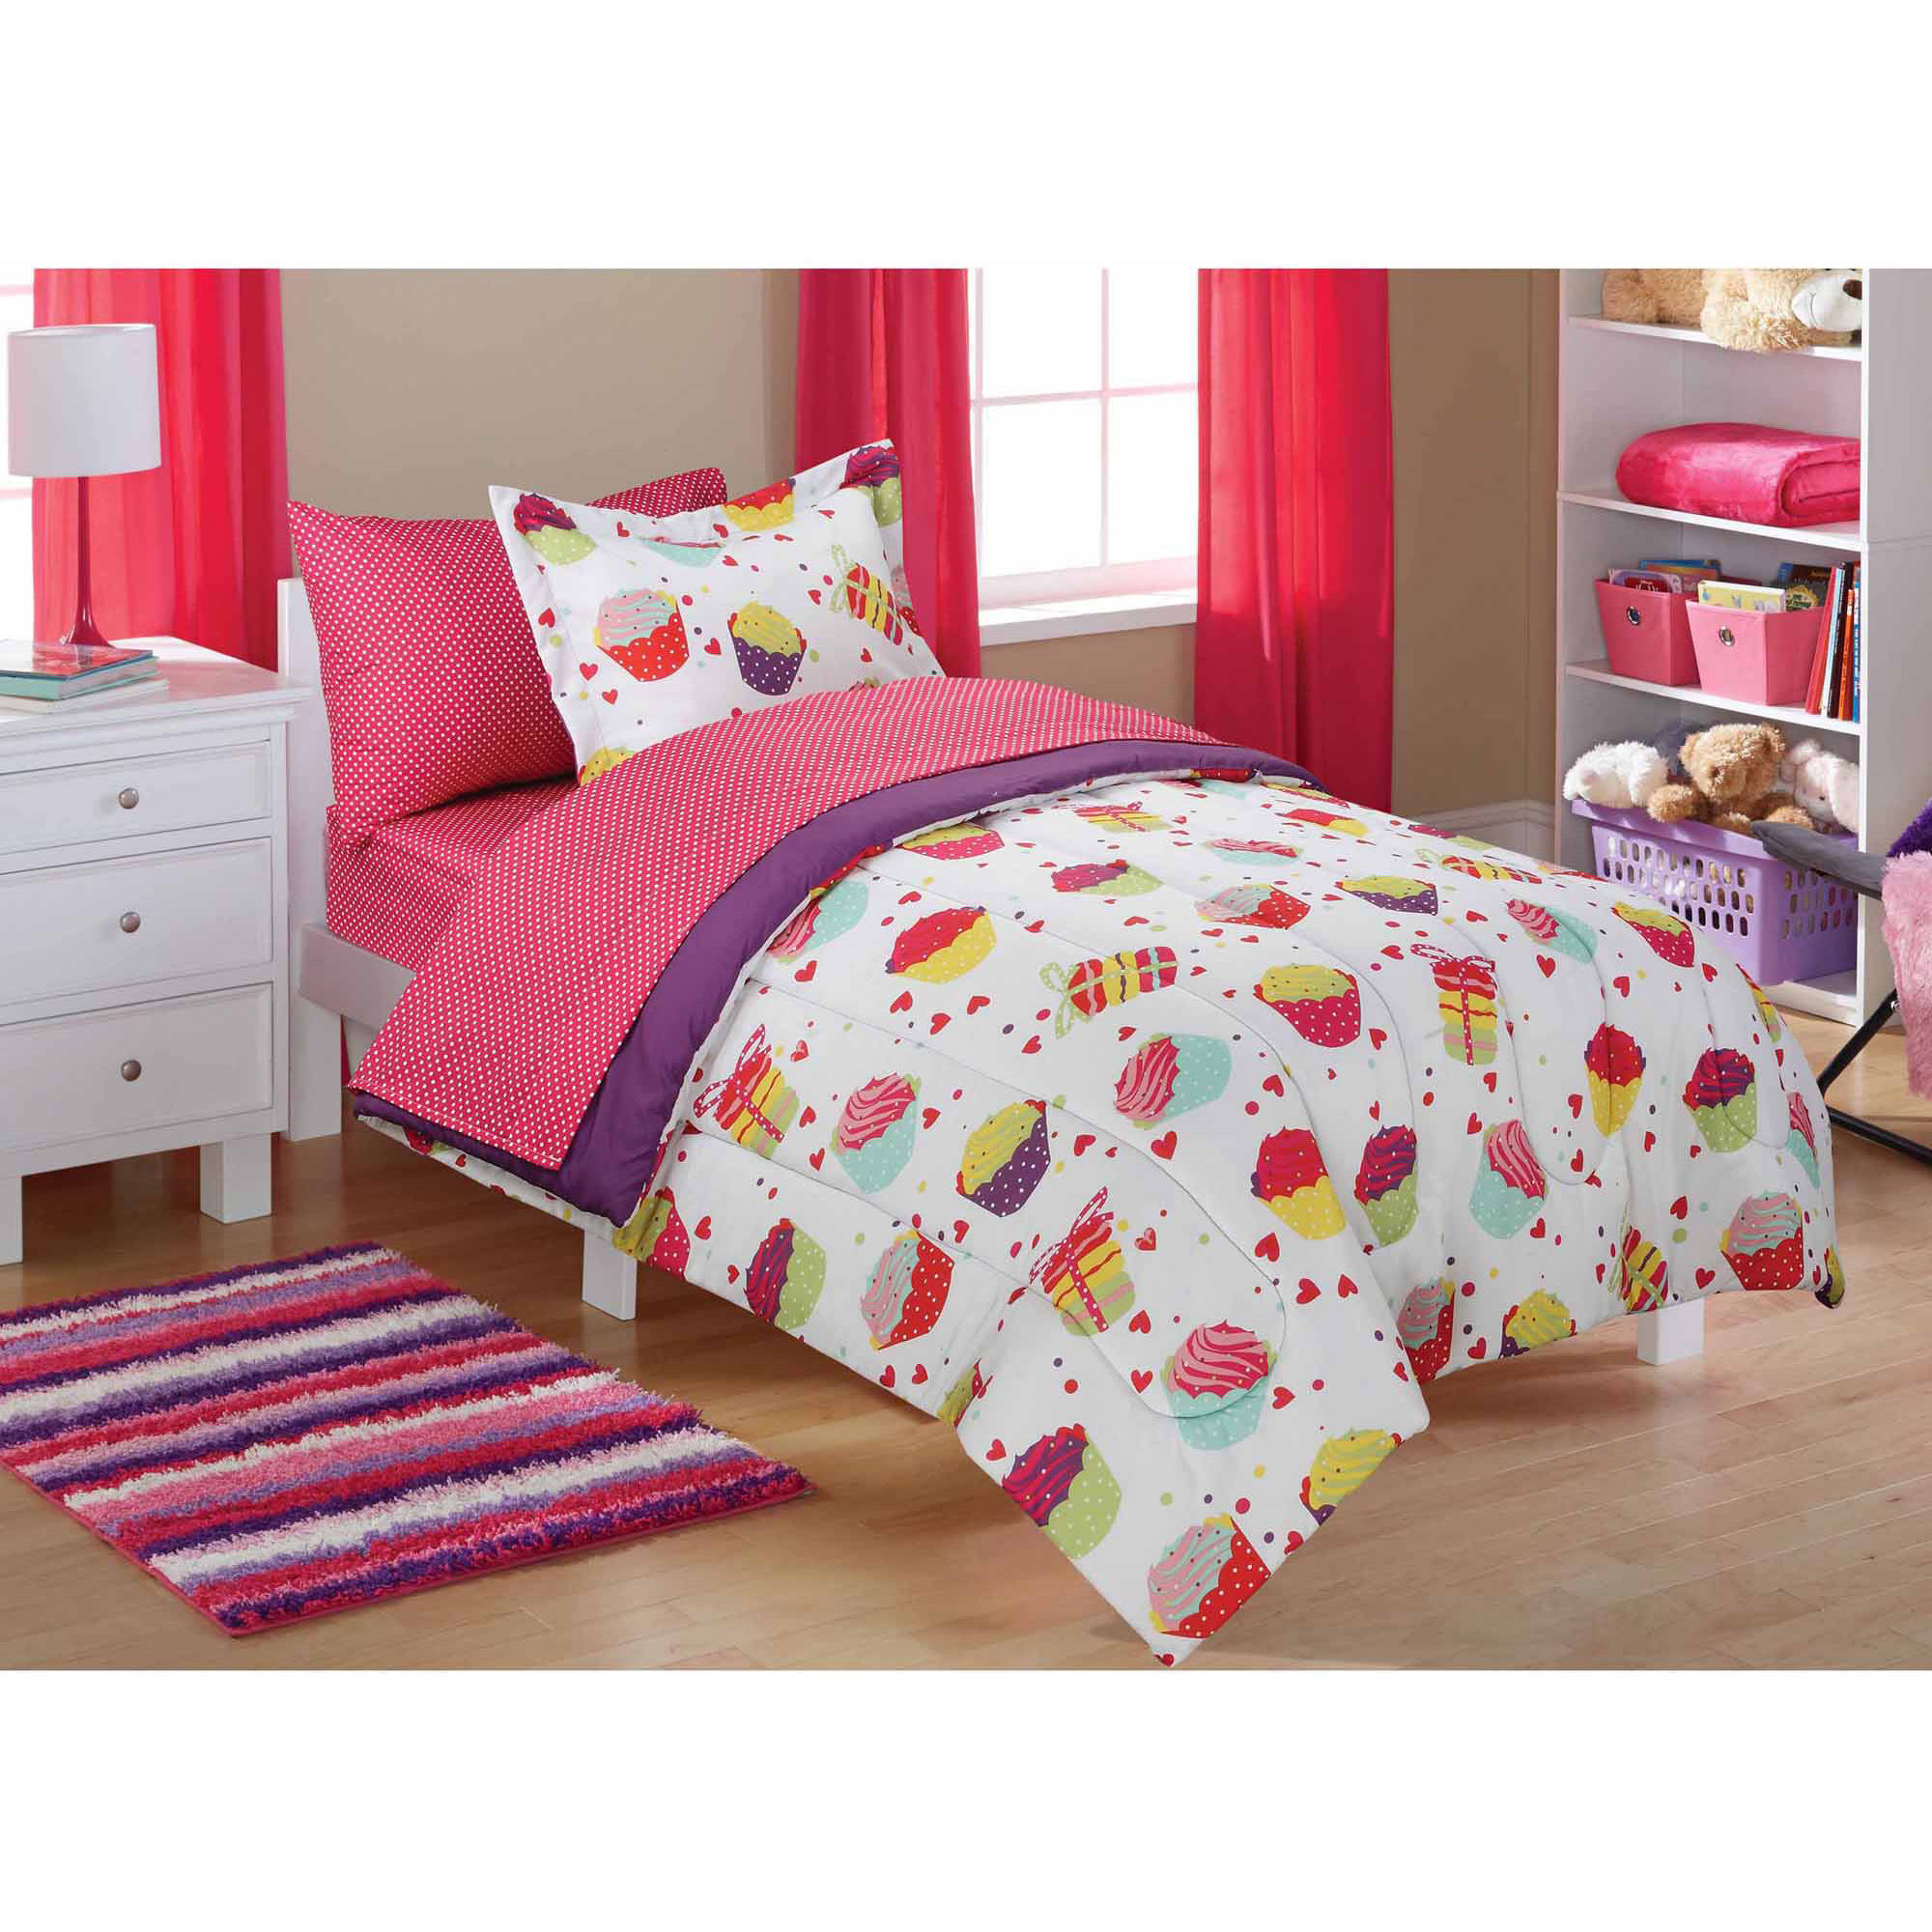 Mainstays Kids Cupcake Coordinated Bed in a Bag - Walmart.com